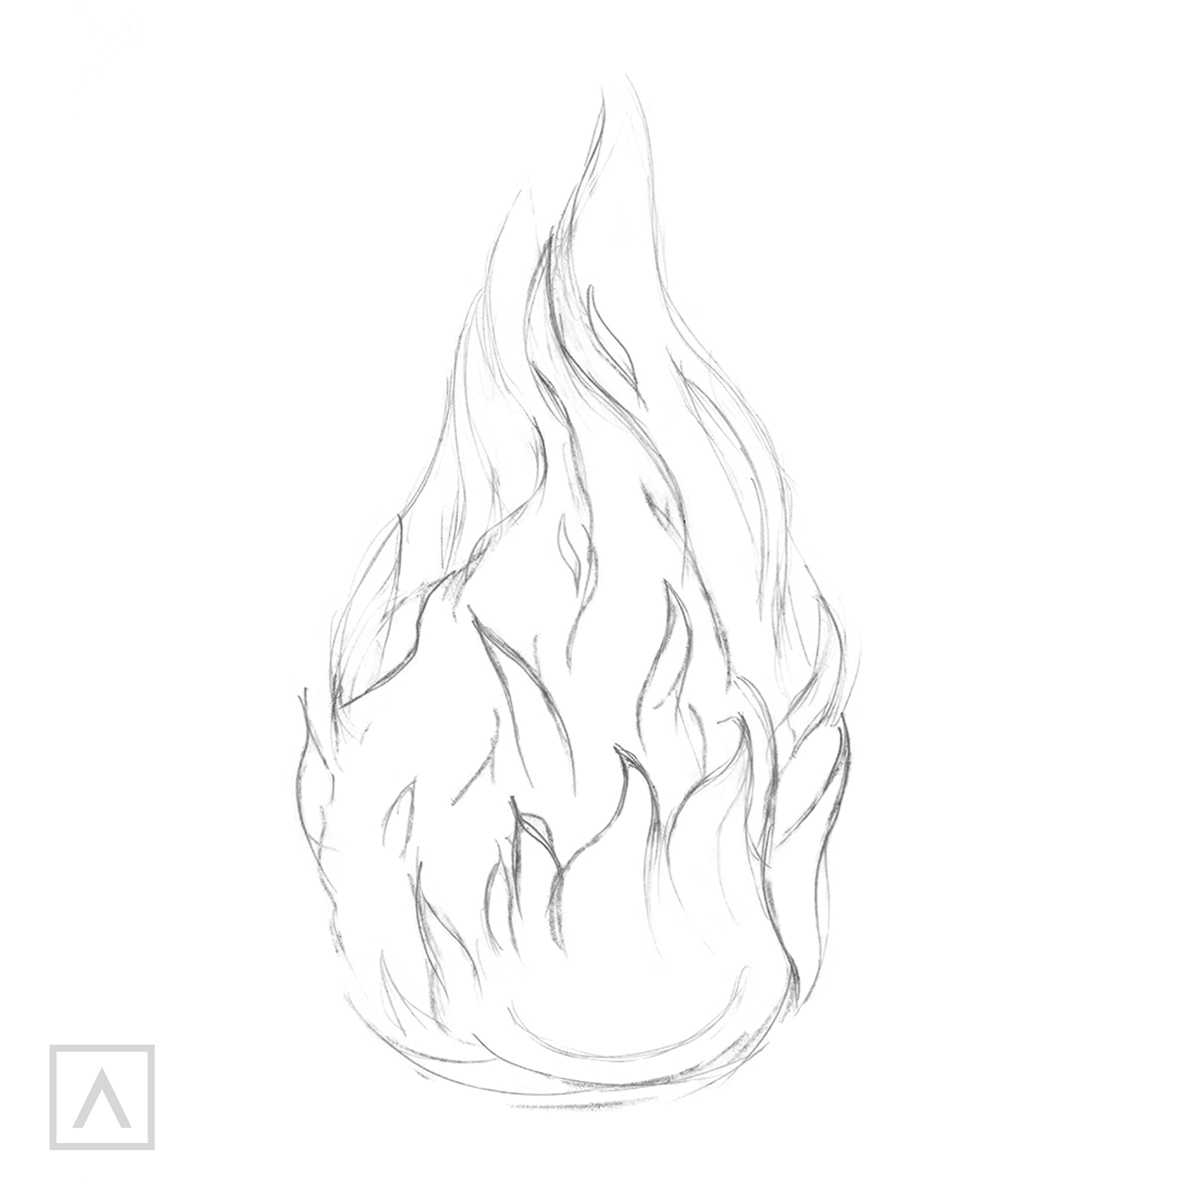 How to draw flames - Step 3